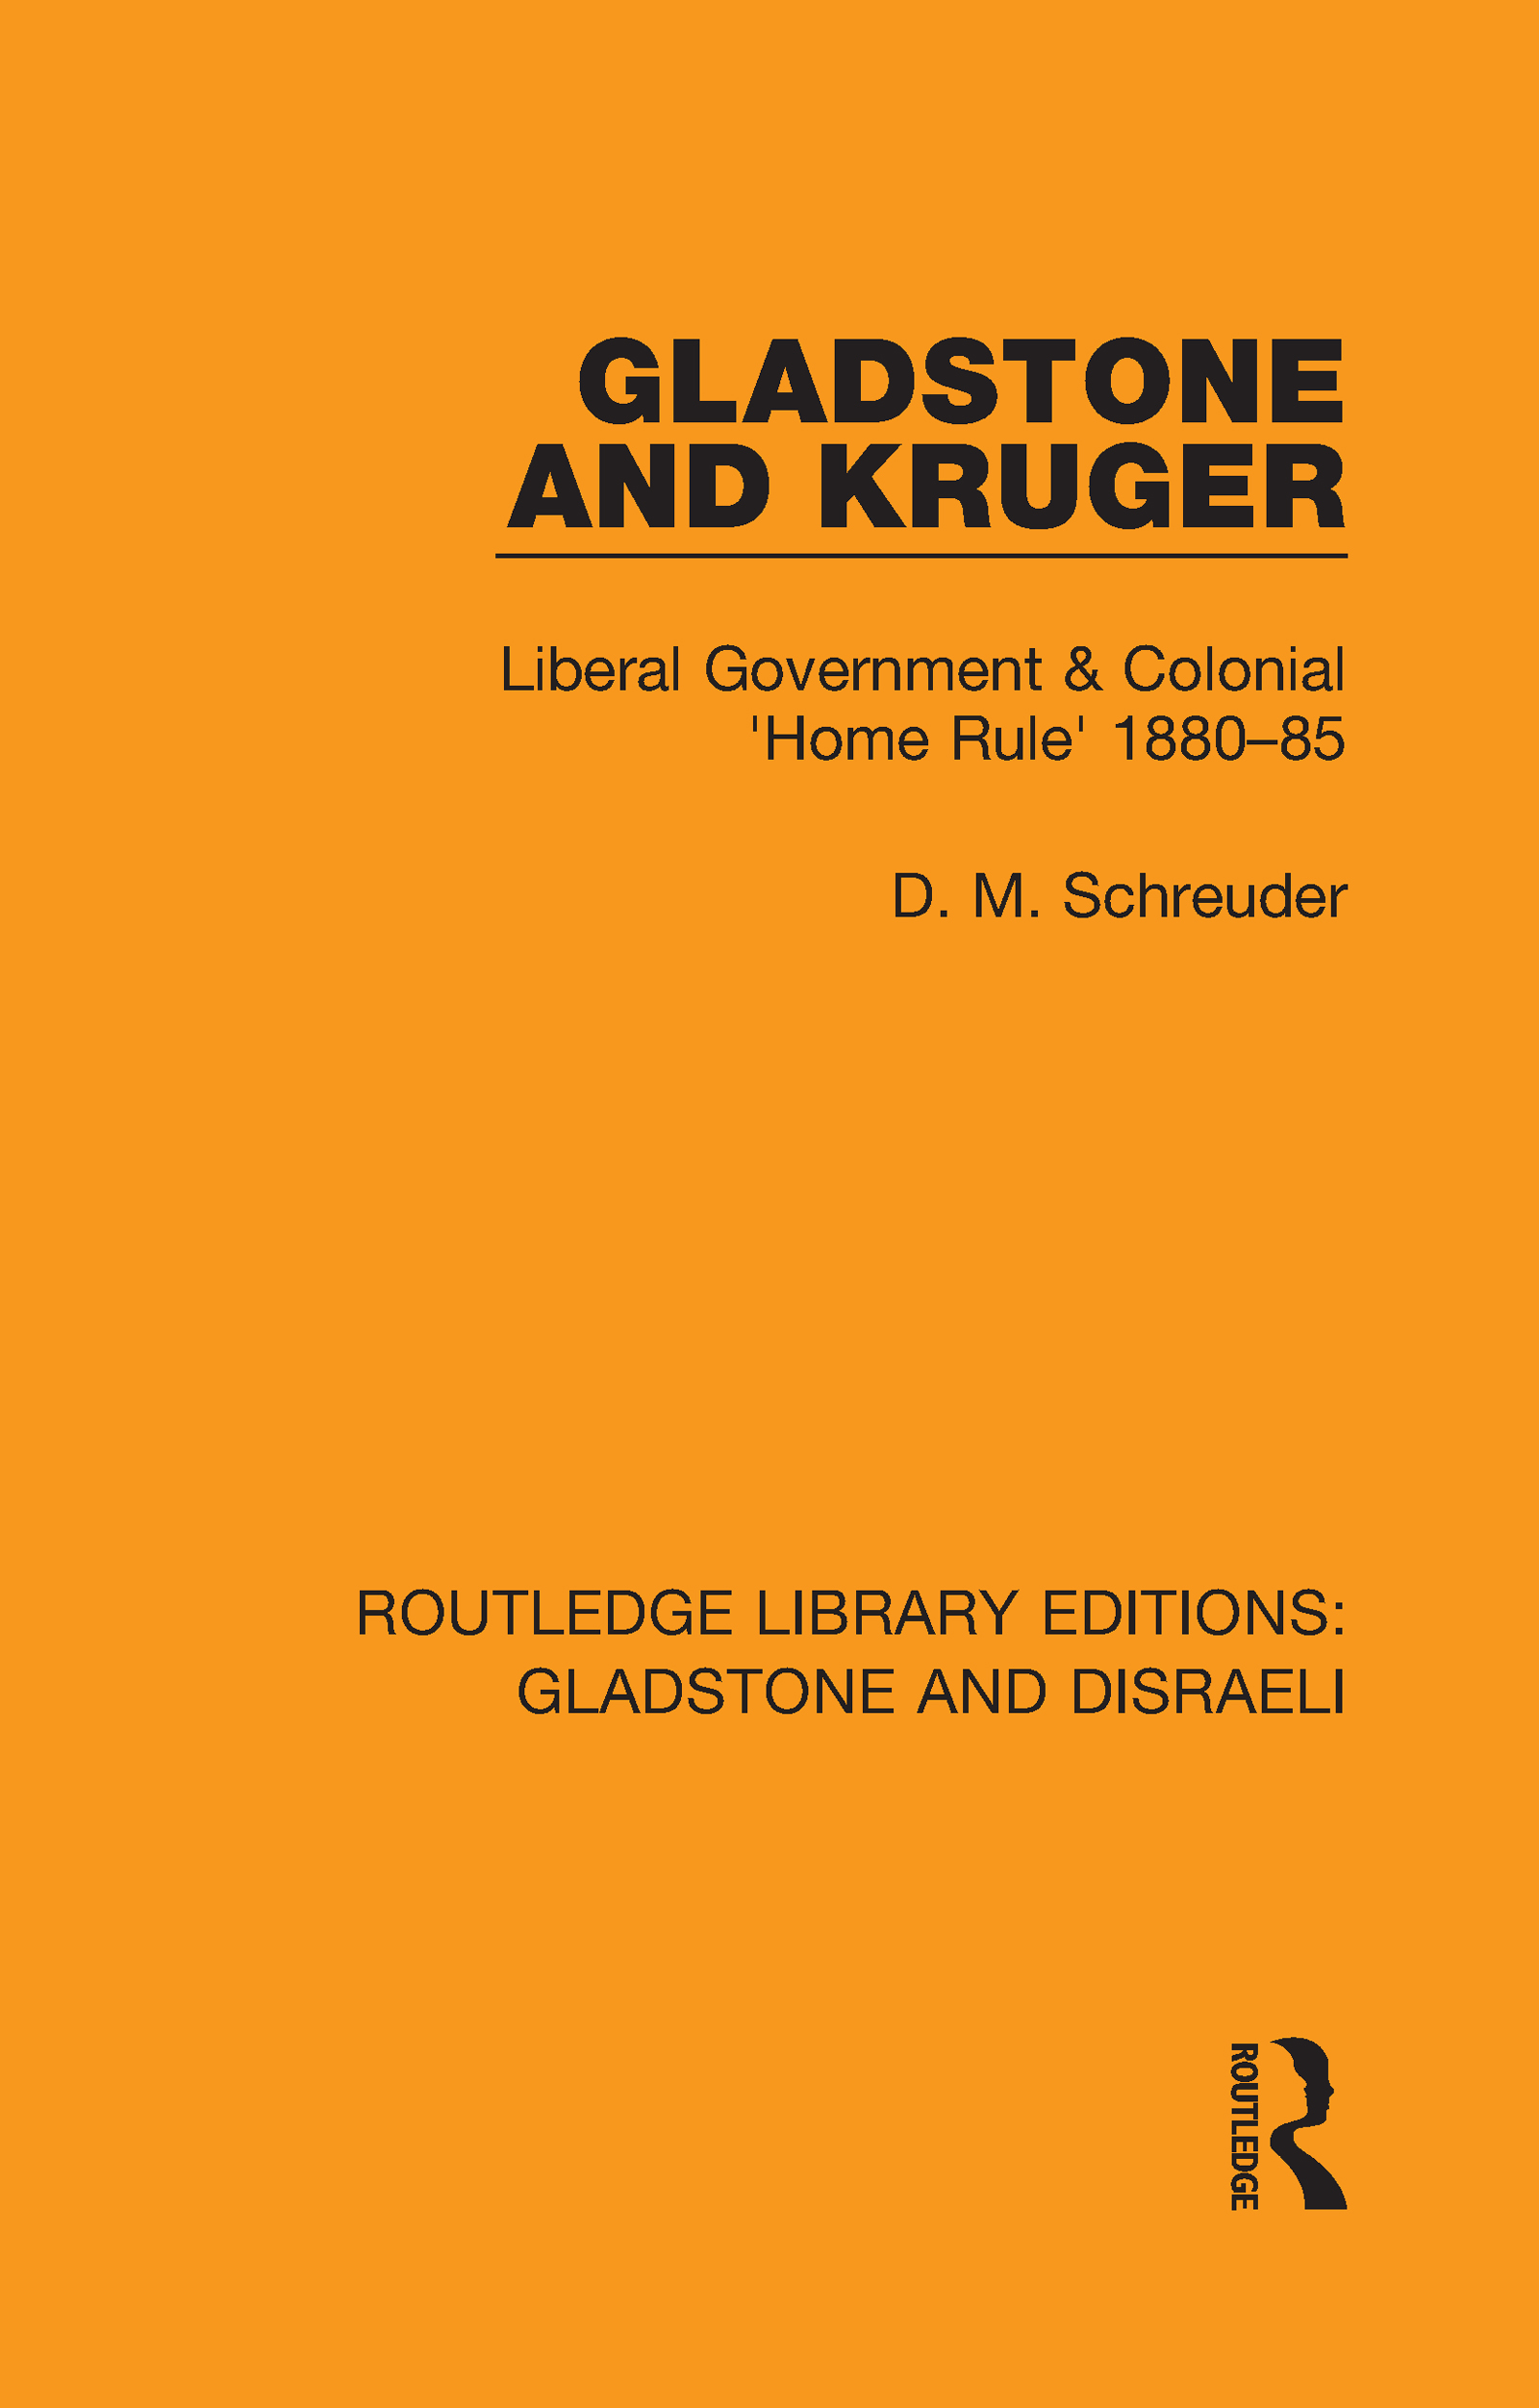 Gladstone and Kruger: Liberal Government & Colonial 'Home Rule' 1880-85 book cover